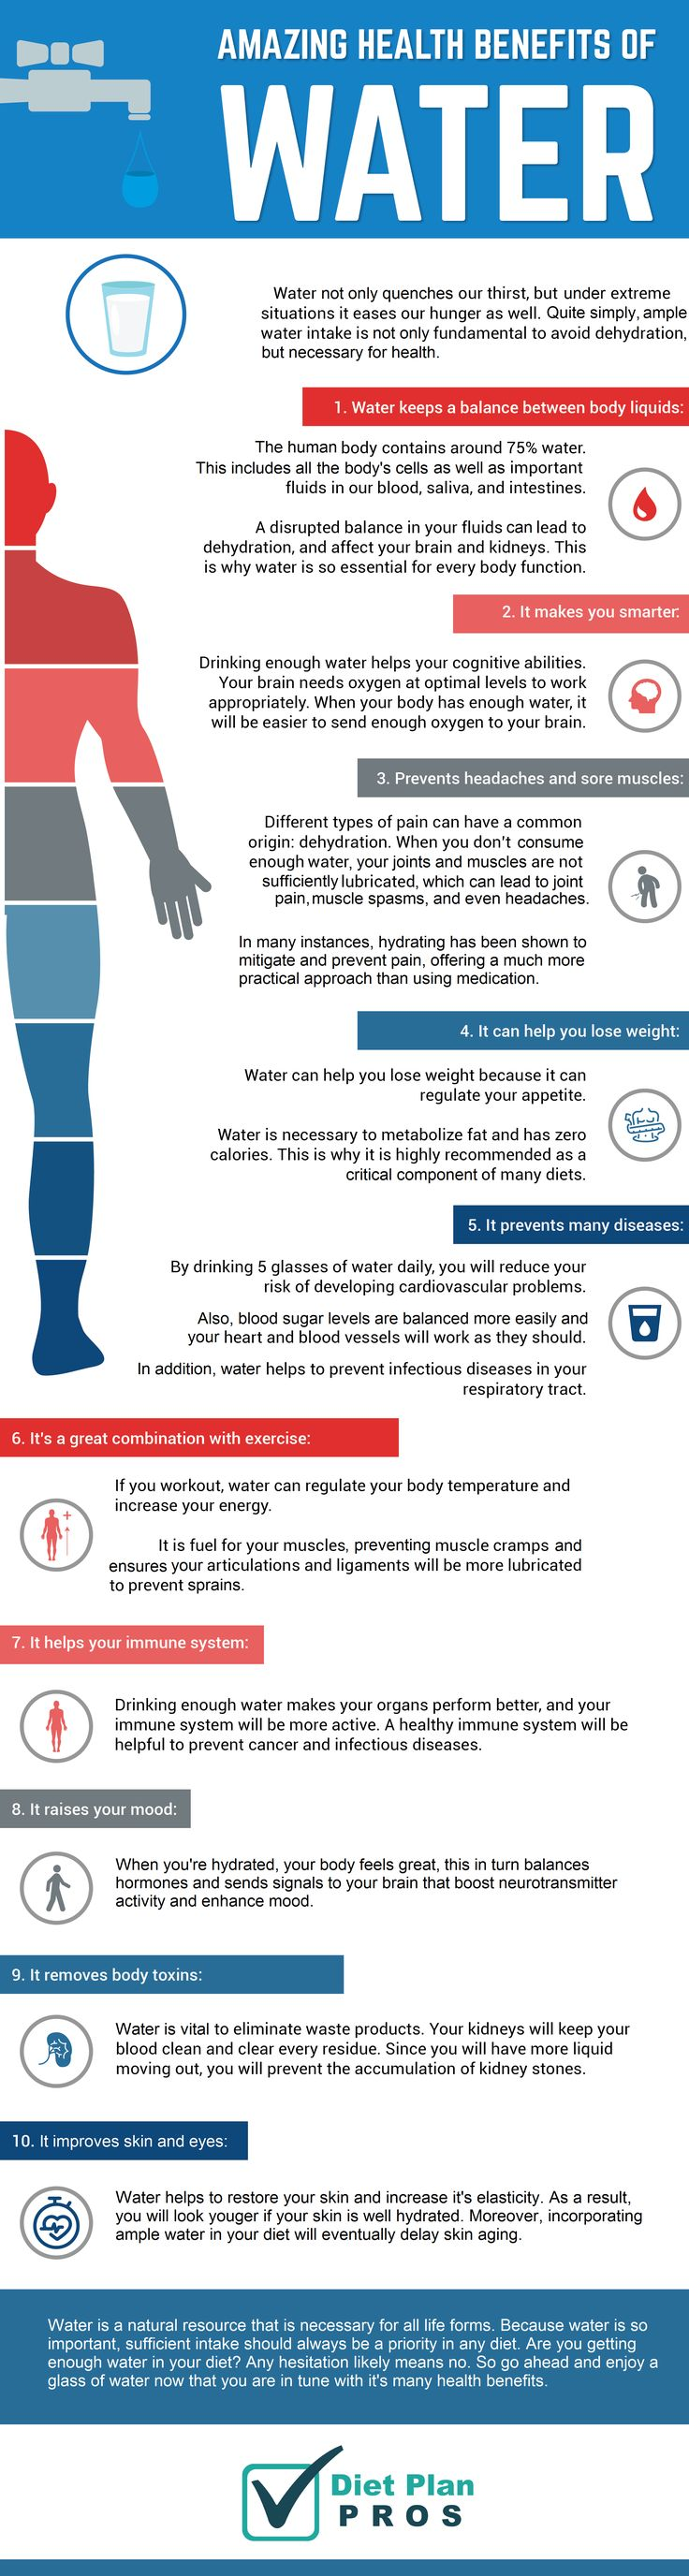 10 Amazing Health Benefits of Water and the Importance of Staying Hydrated